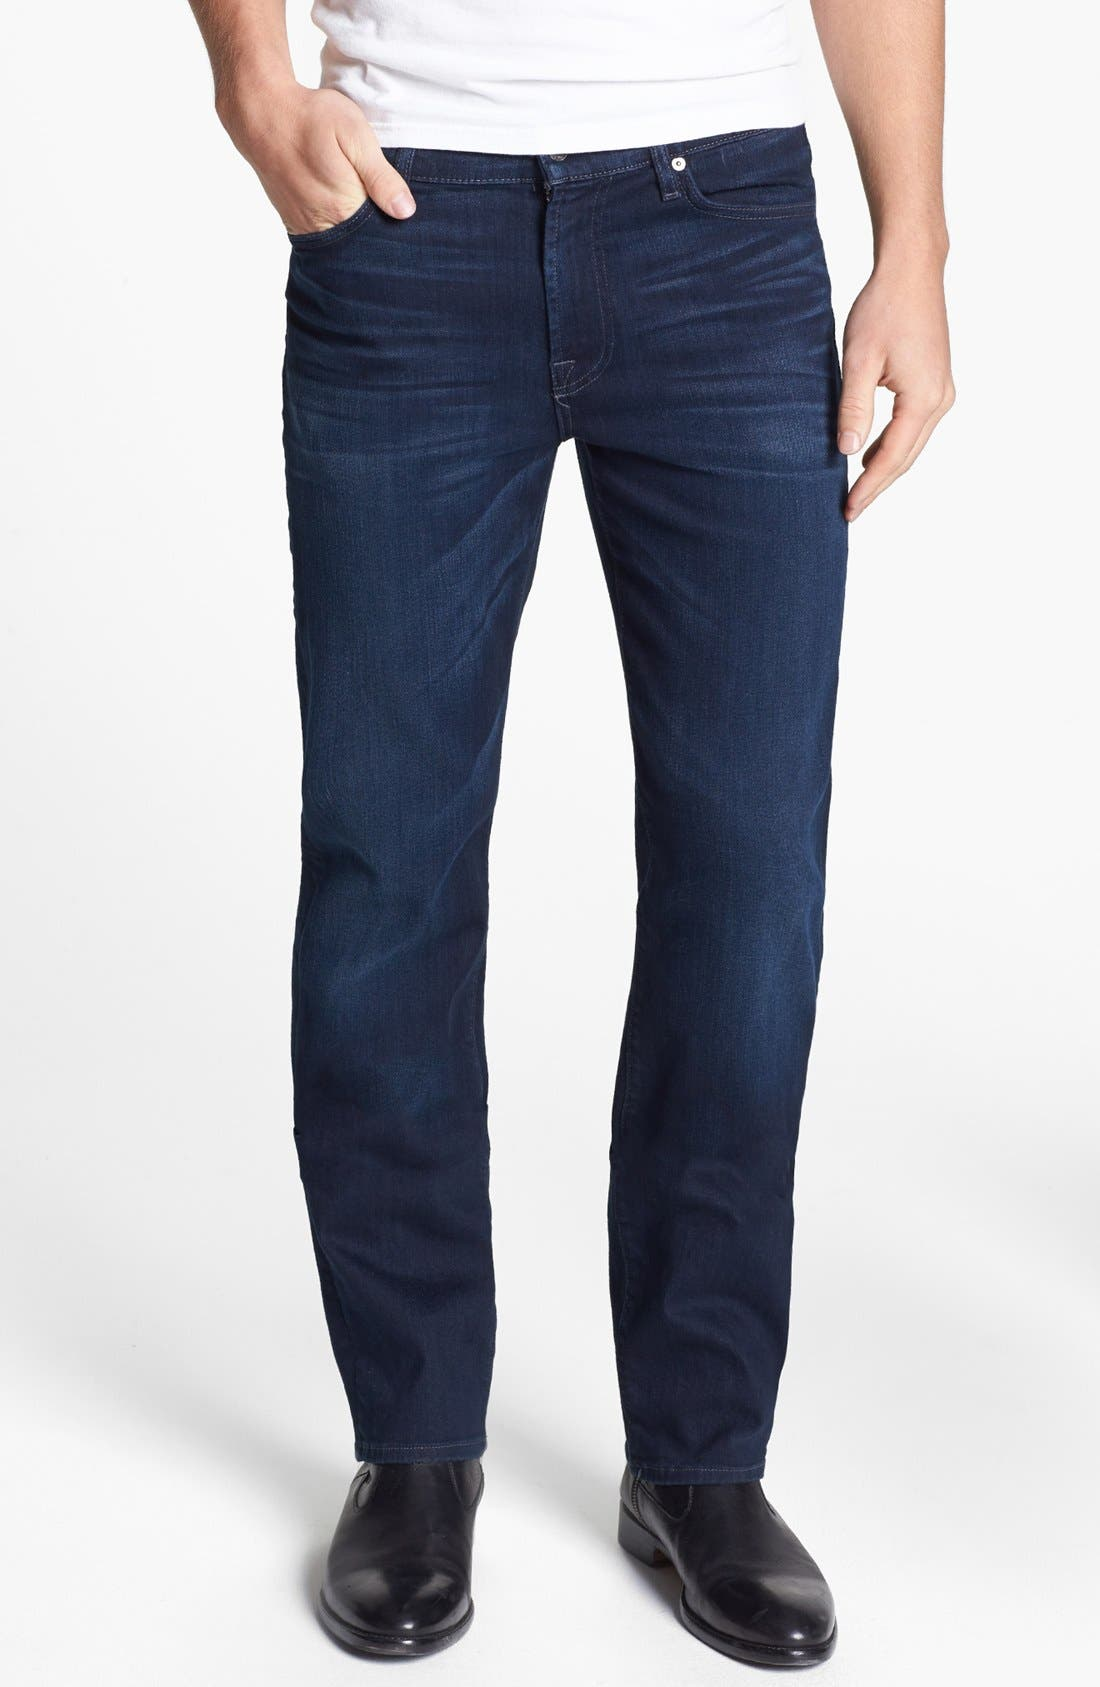 Main Image - 7 For All Mankind® 'Slimmy - Luxe Performance' Slim Fit Jeans (Blue Ice)